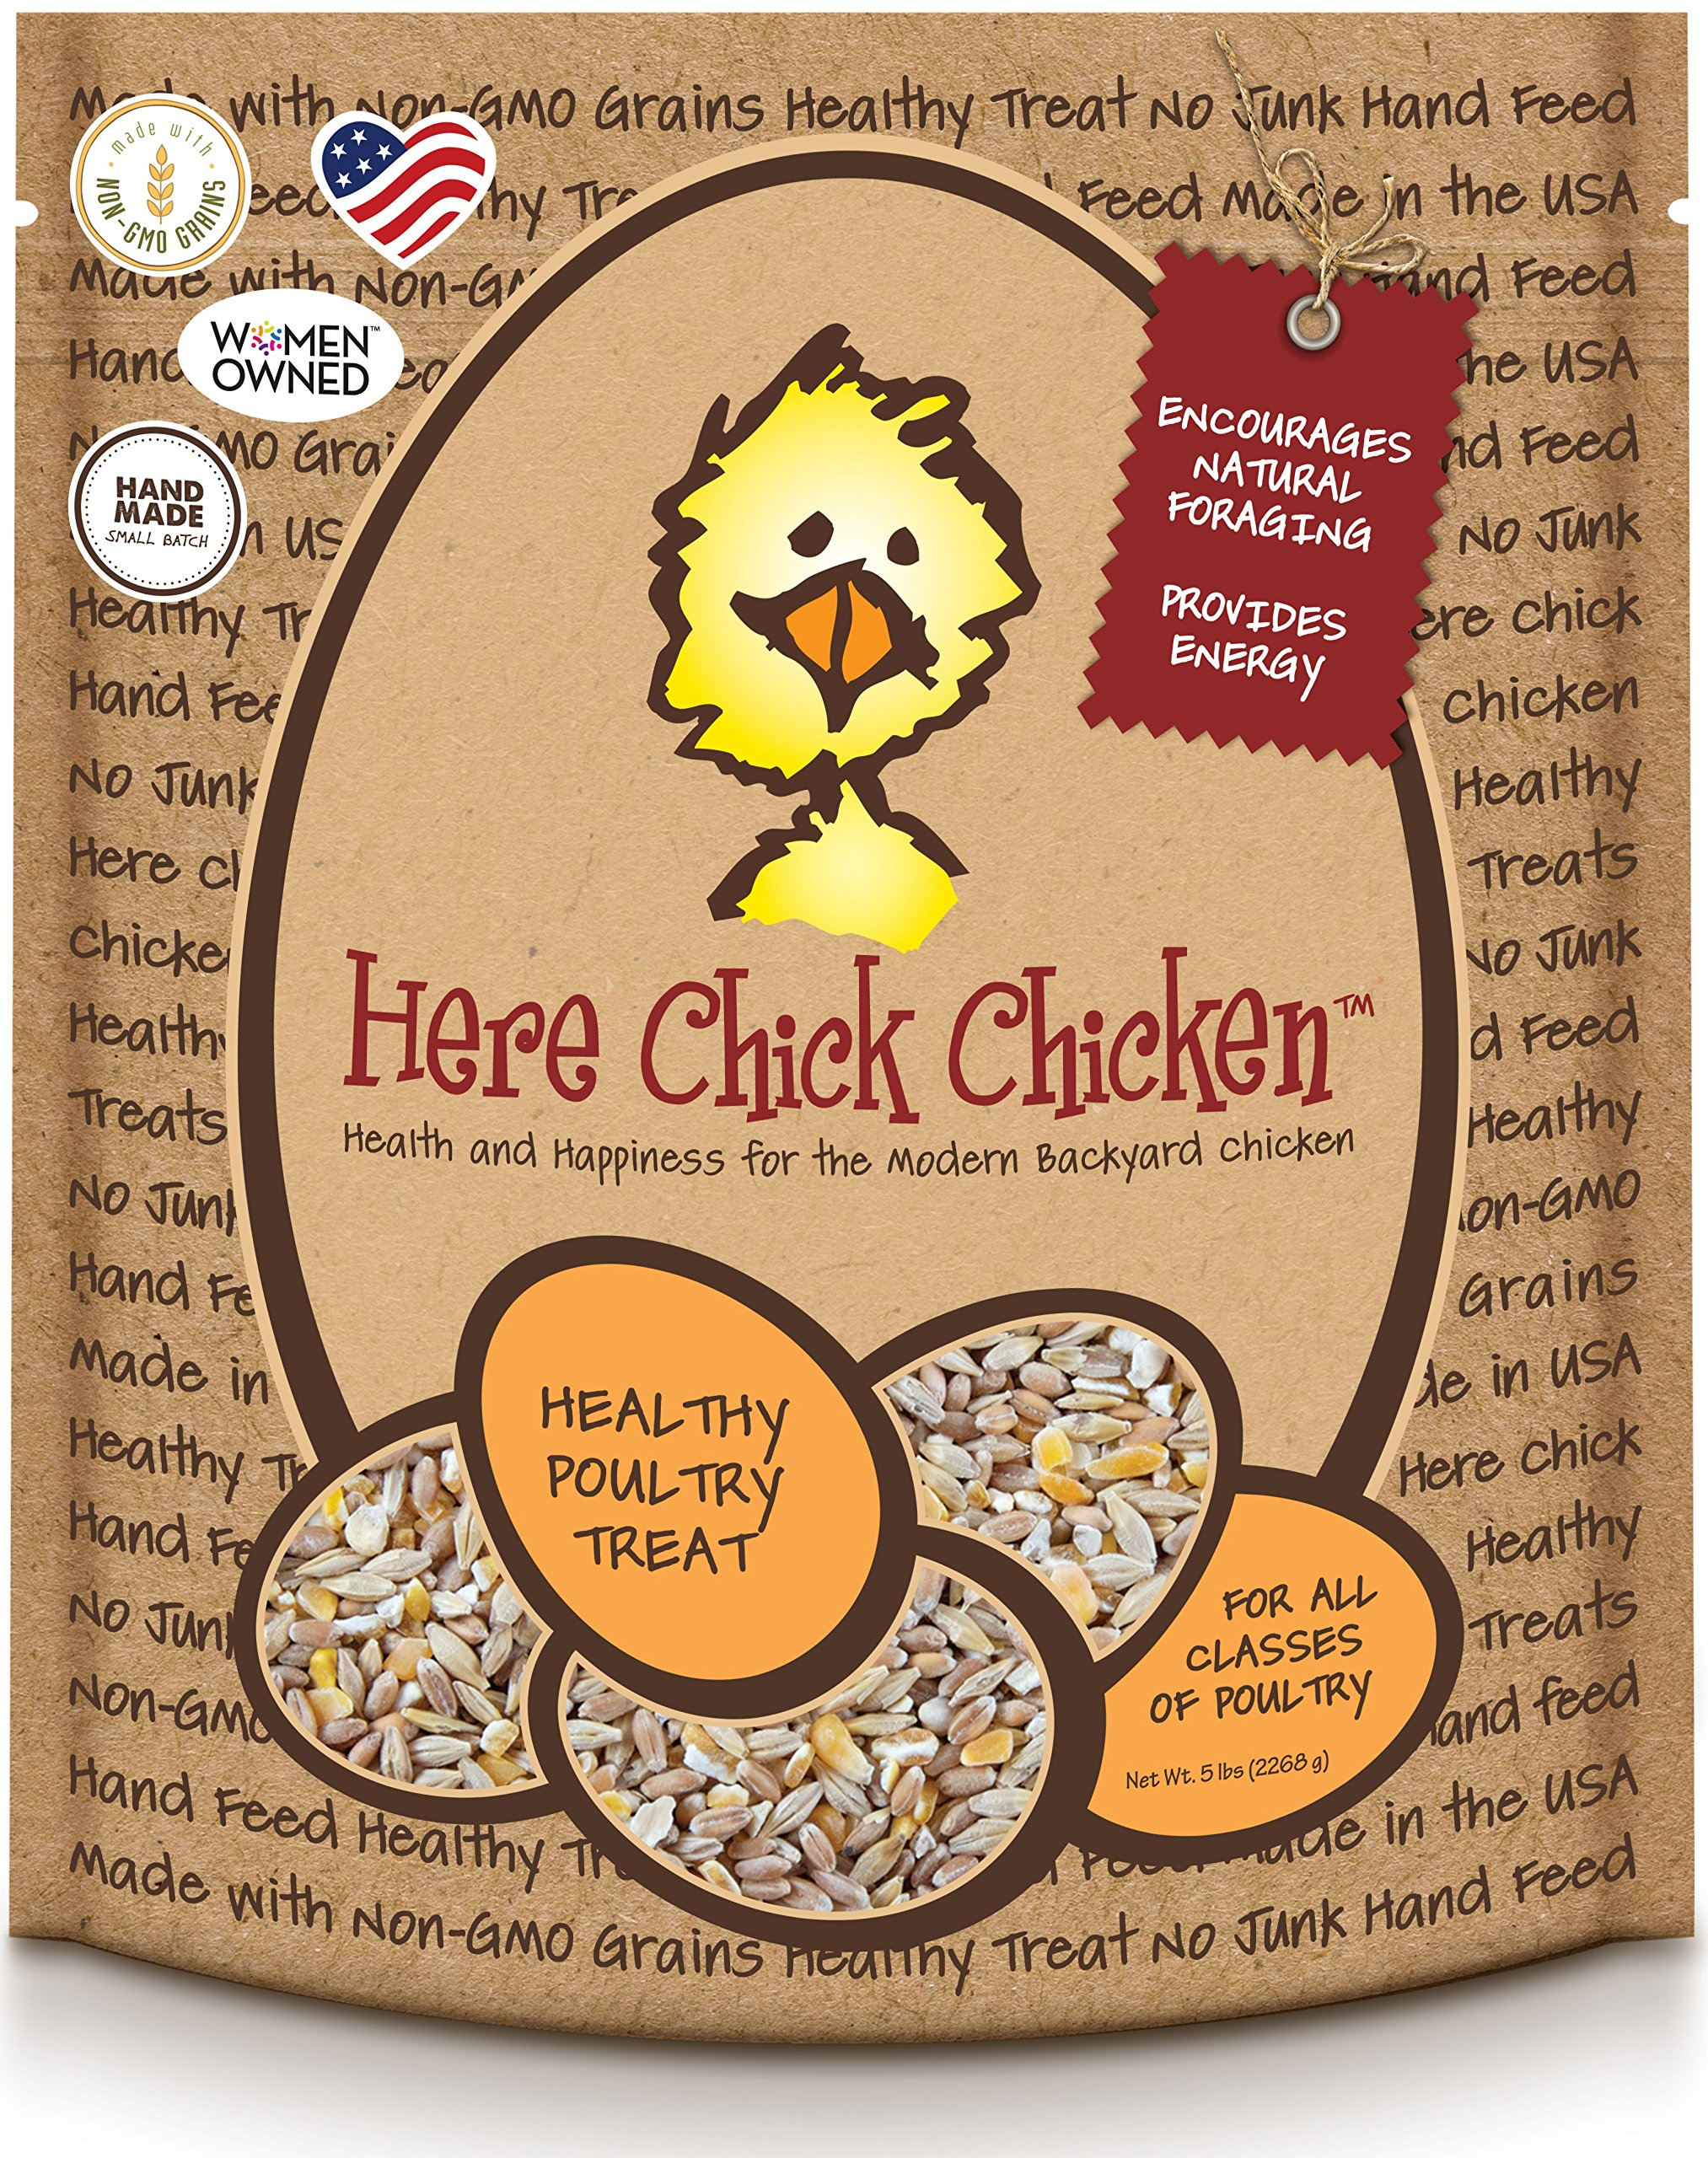 Treats for Chickens Here Chick Chicken Treat, 5-Pound